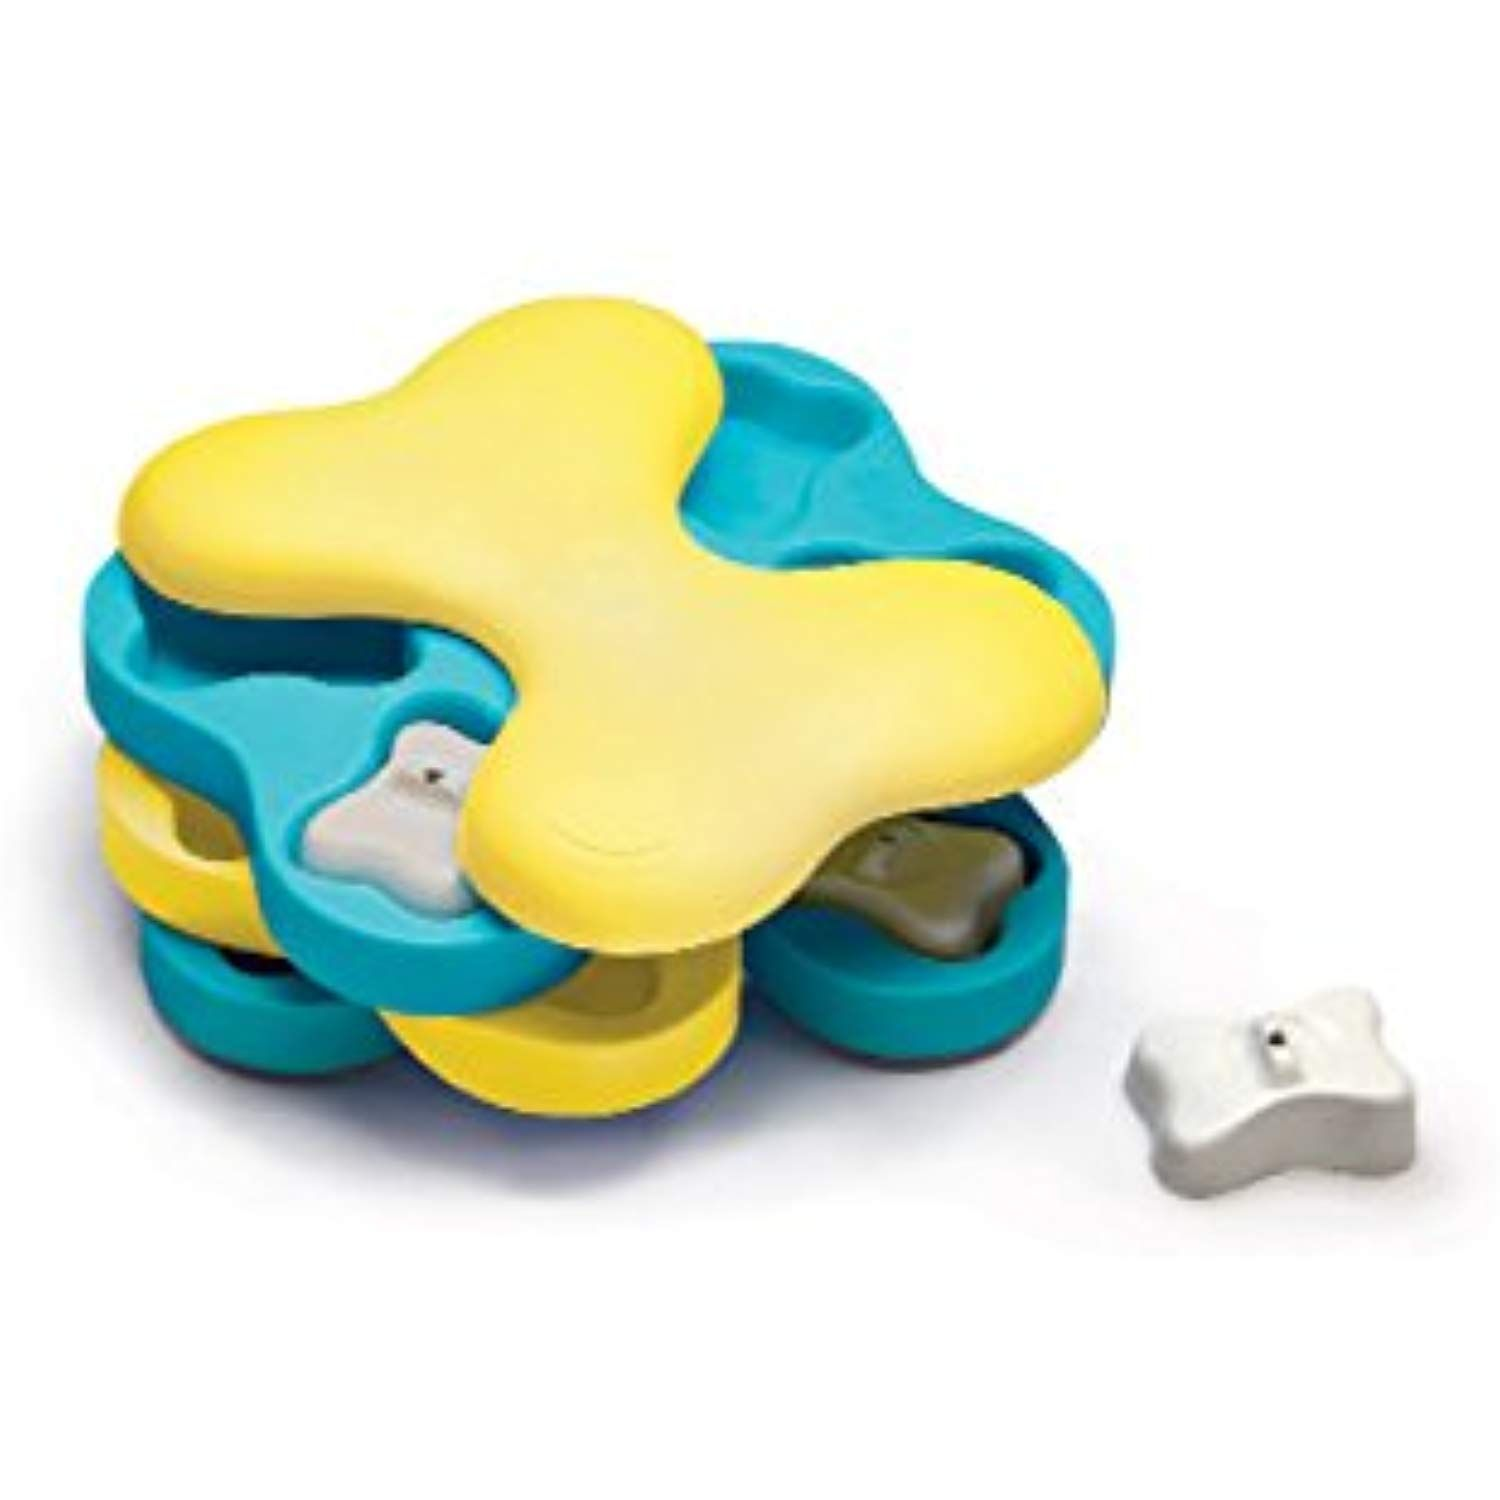 Outward Hound Nina Ottosson Dog Tornado Treat Puzzle Dog Toy By